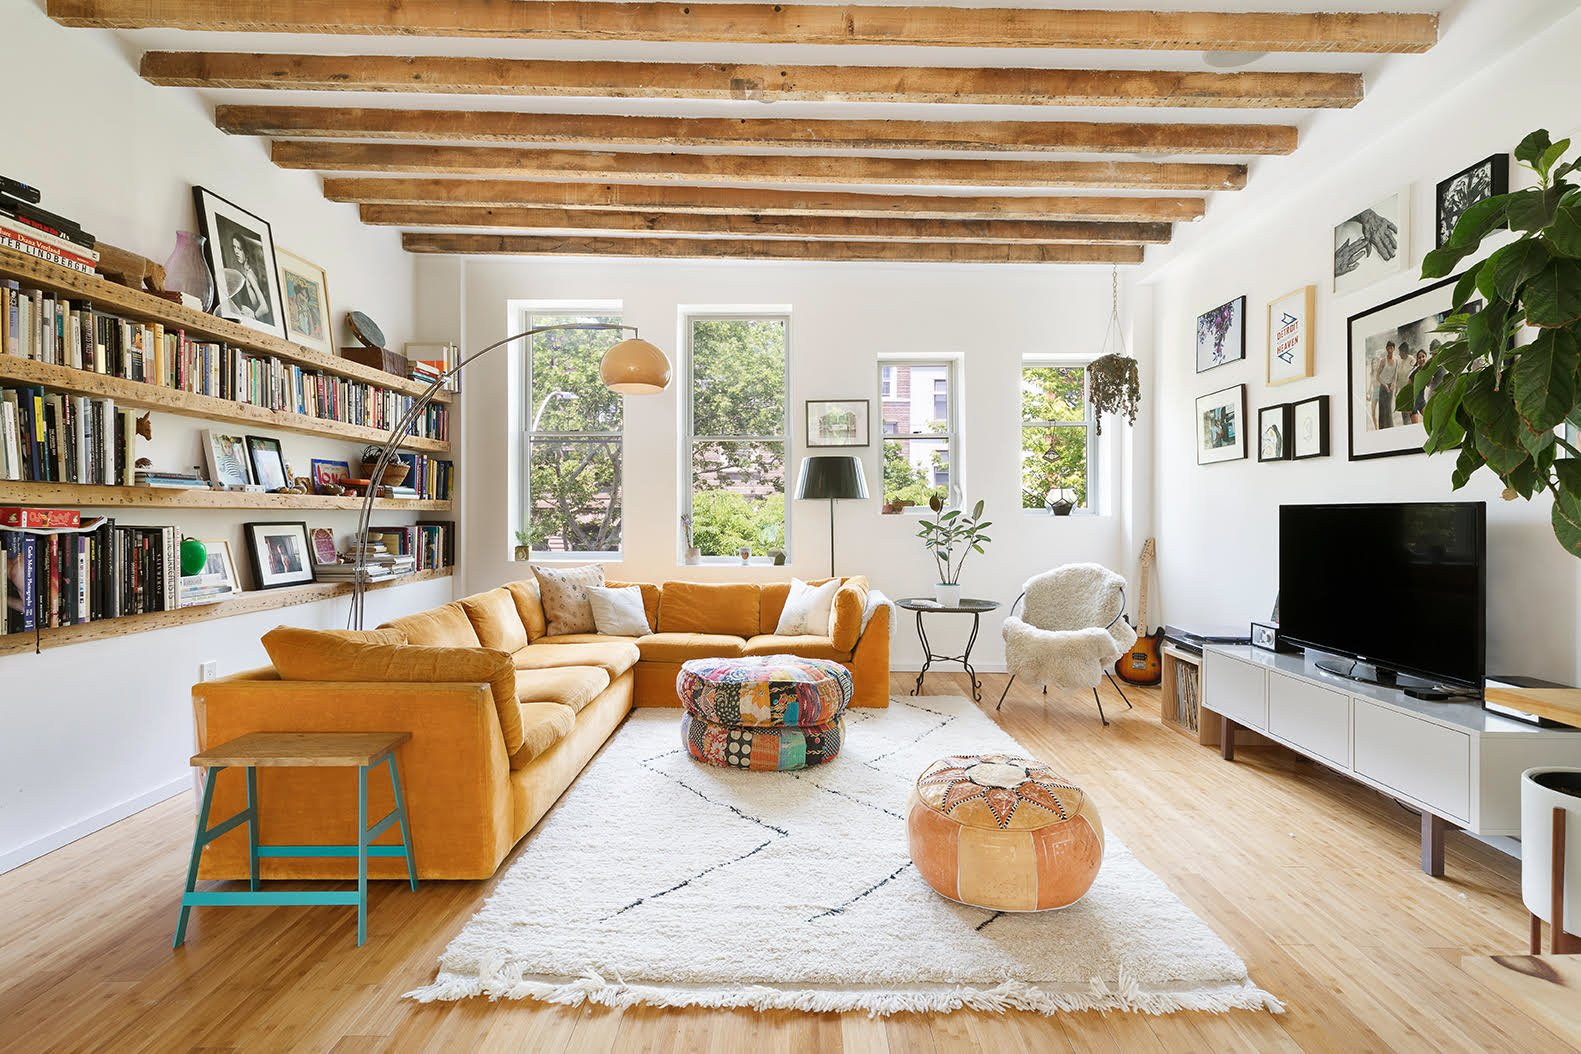 The loft-inspired living room features bookshelves made of salvaged wood along one wall. Exposed beams—also salvaged wood—run along the ceiling.  Photo 2 of 8 in A Brooklyn Townhouse Reimagined as a Crisp, Loft-Like Duplex Asks $2.75M